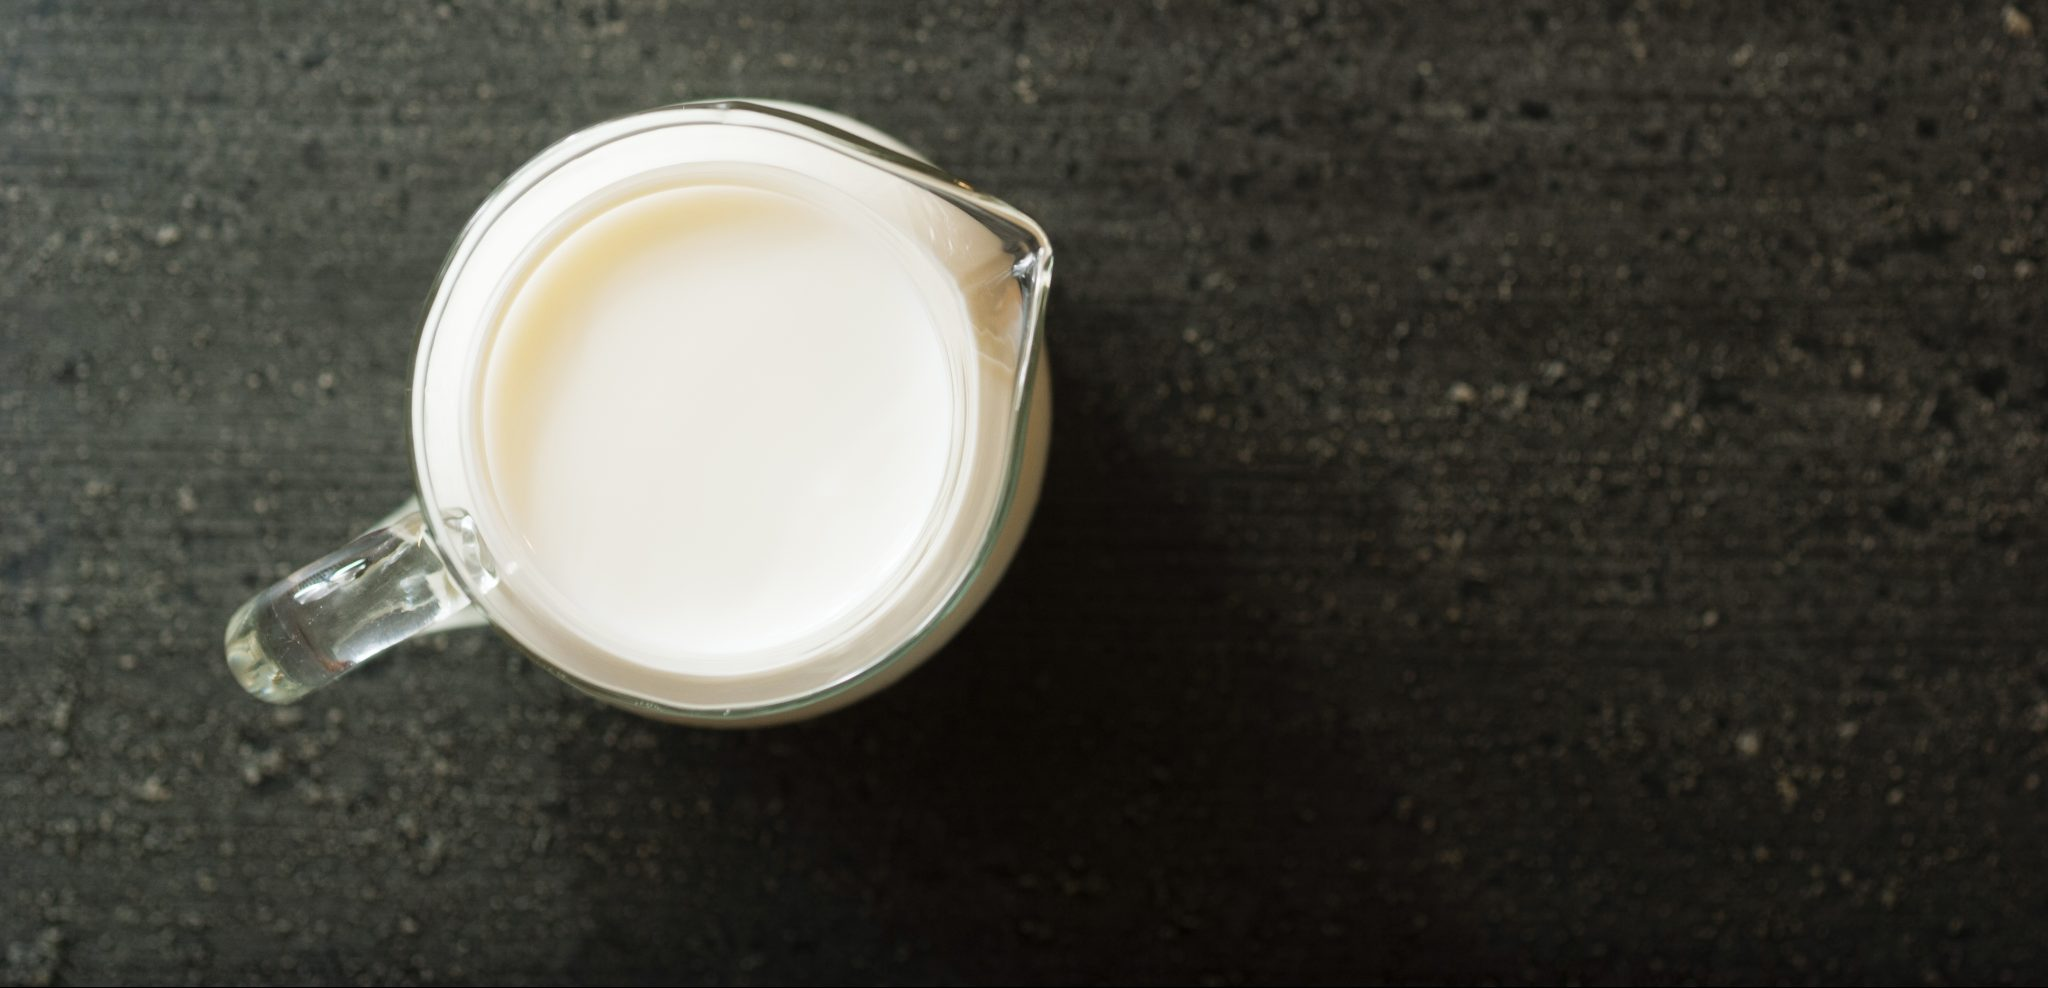 Can Drinking Buttermilk Help Lose Weight?